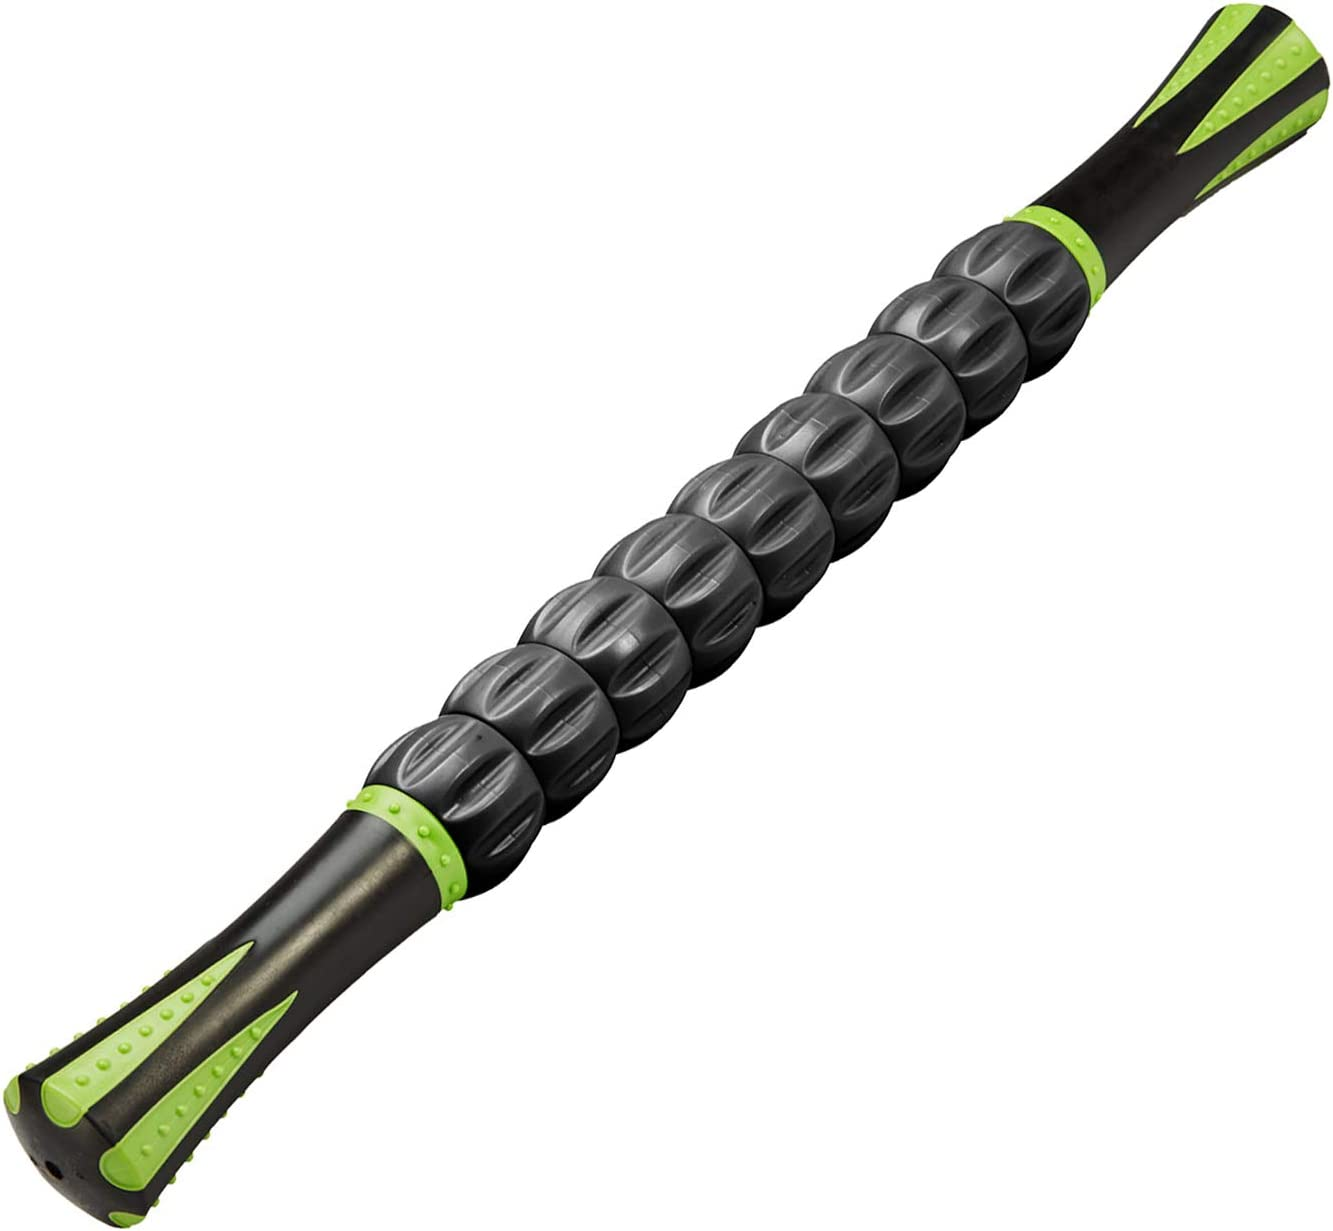 REEHUT Muscle Roller Massage Stick Tool for Athletes, 18 Inches Muscle Roller for Relieving Muscle Soreness, Soothing Cramps, Massage, Physical Therapy & Body Recovery Black: Sports & Outdoors